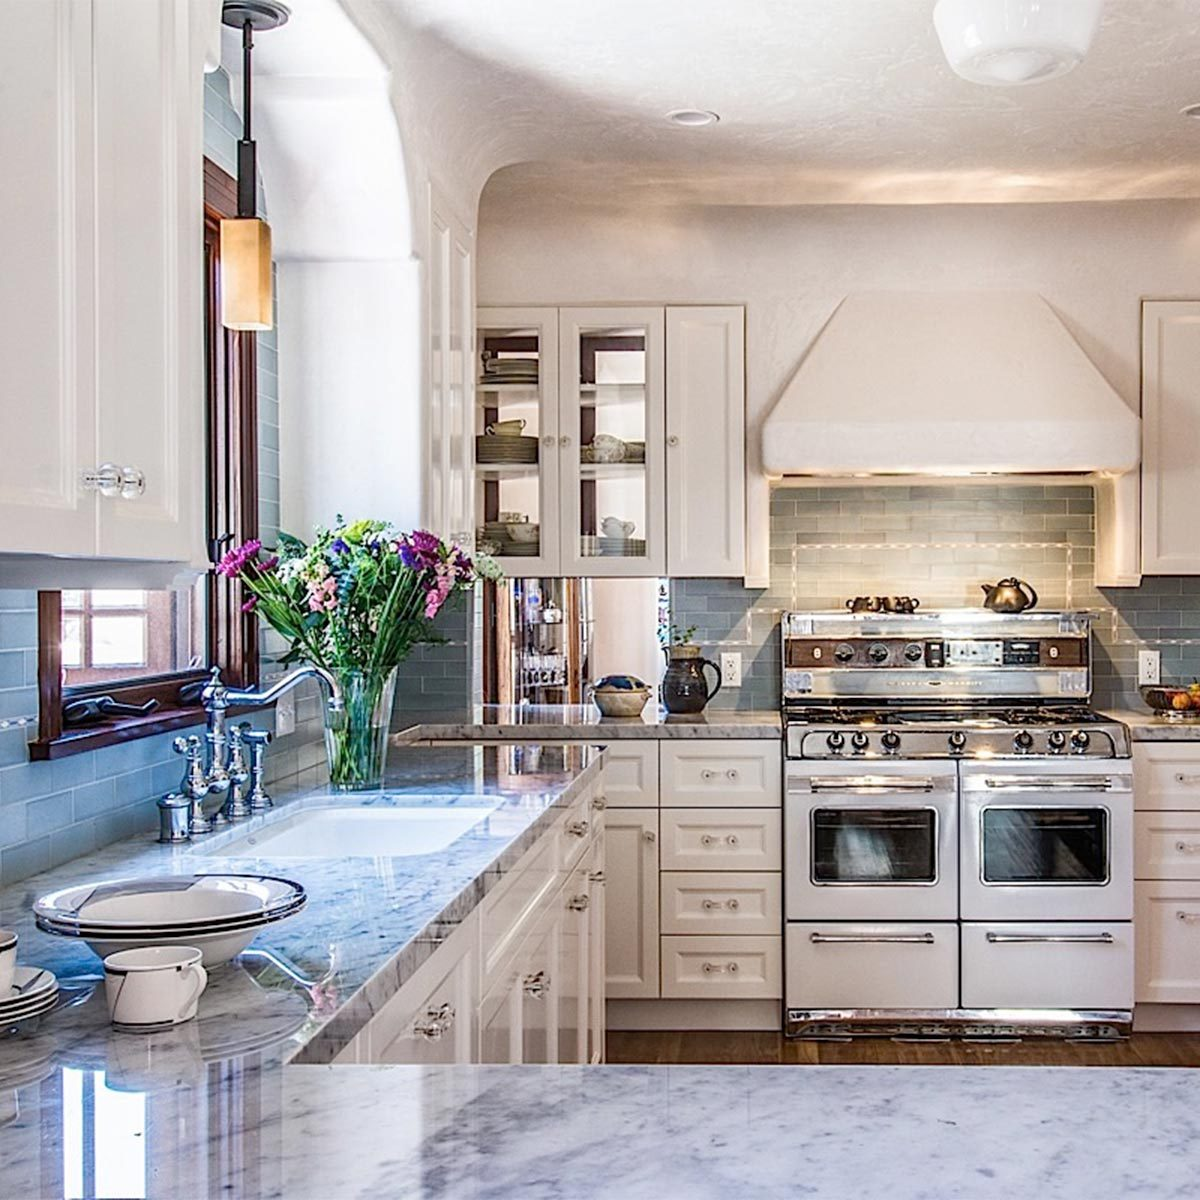 Kitchen Remodel Ideas 2019: 18 Incredible Kitchen Remodeling Ideas